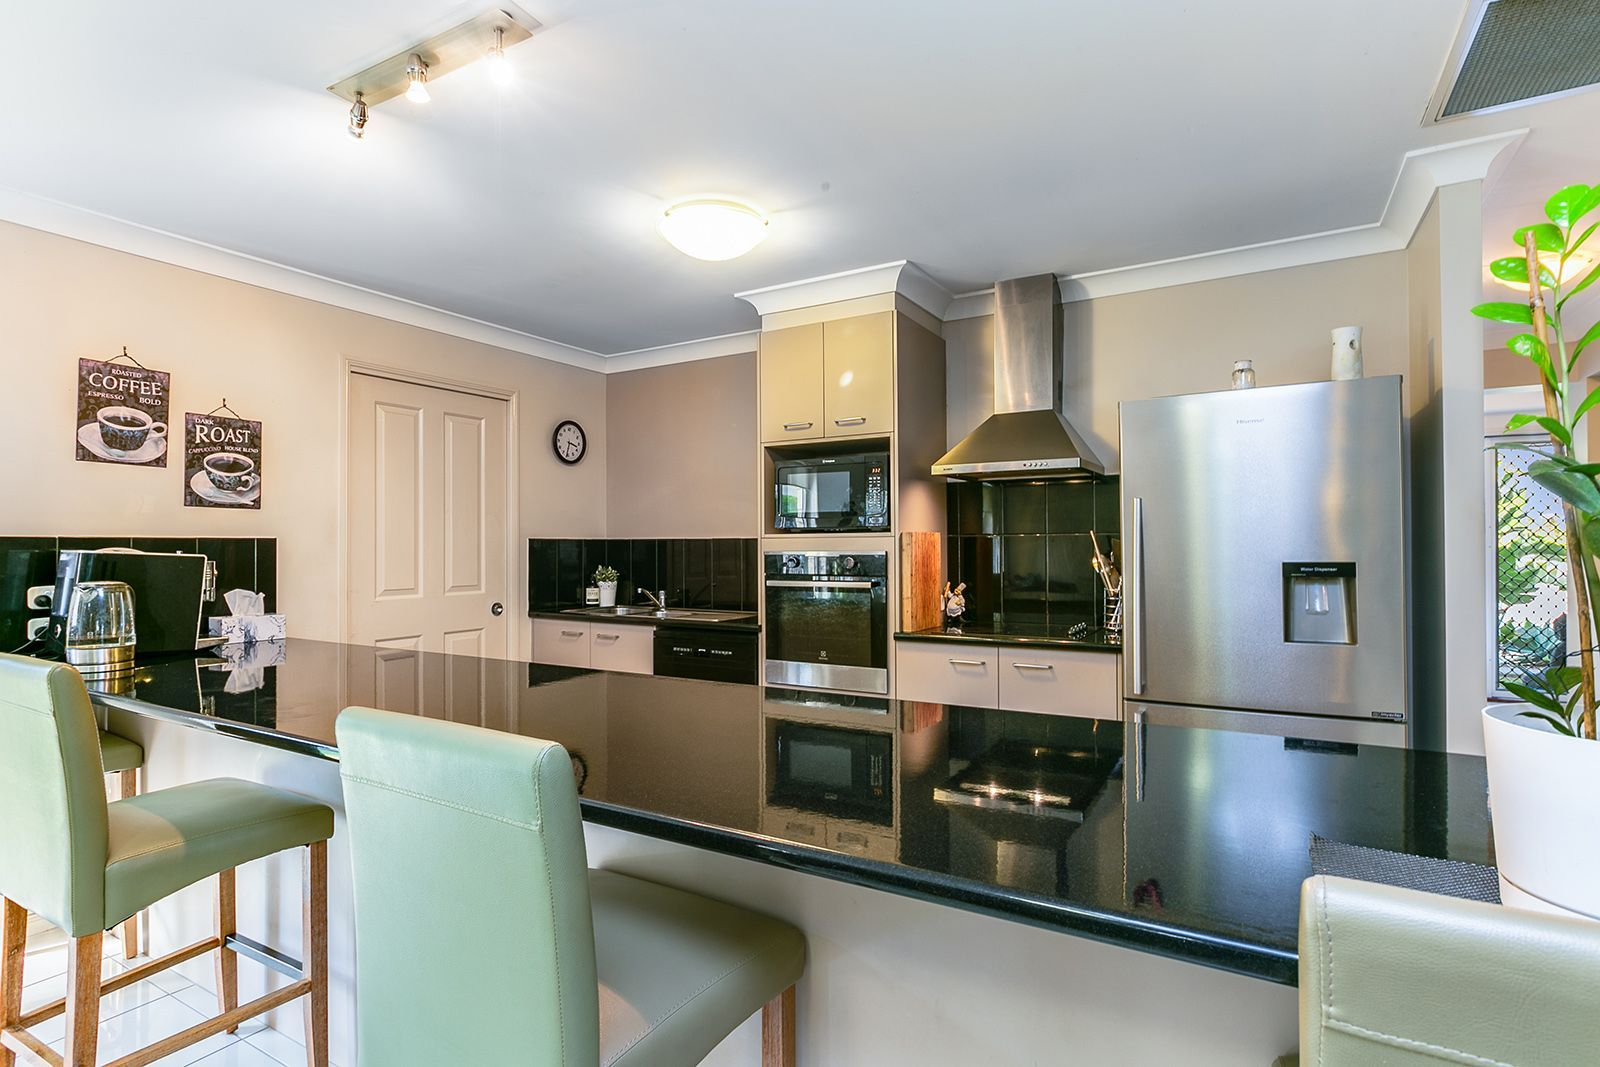 22-24 Urban Road, Caboolture QLD 4510, Image 1